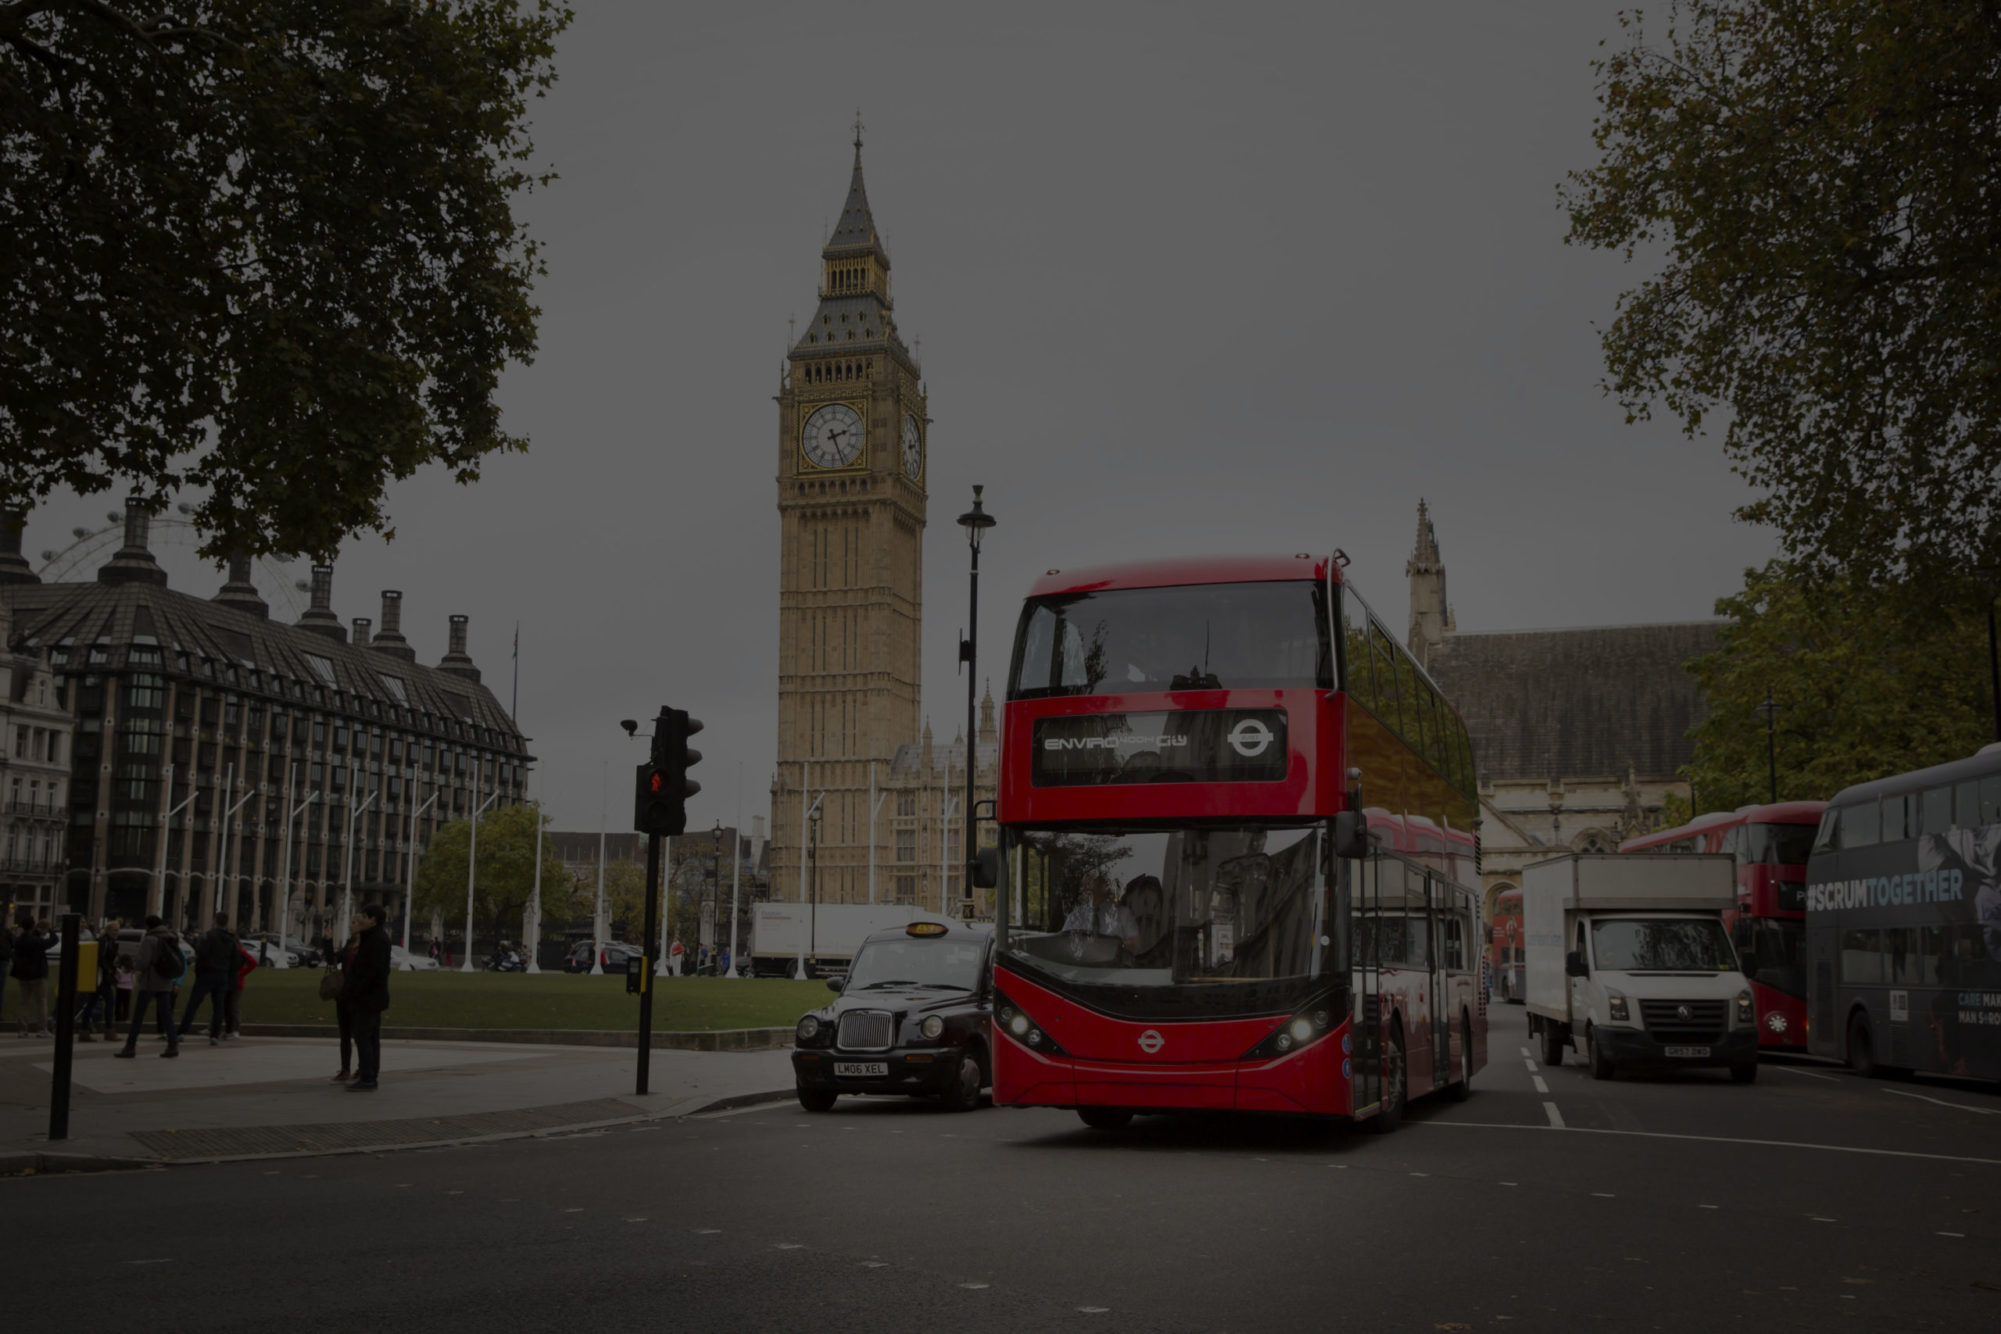 red london bus with london cab and big ben full image